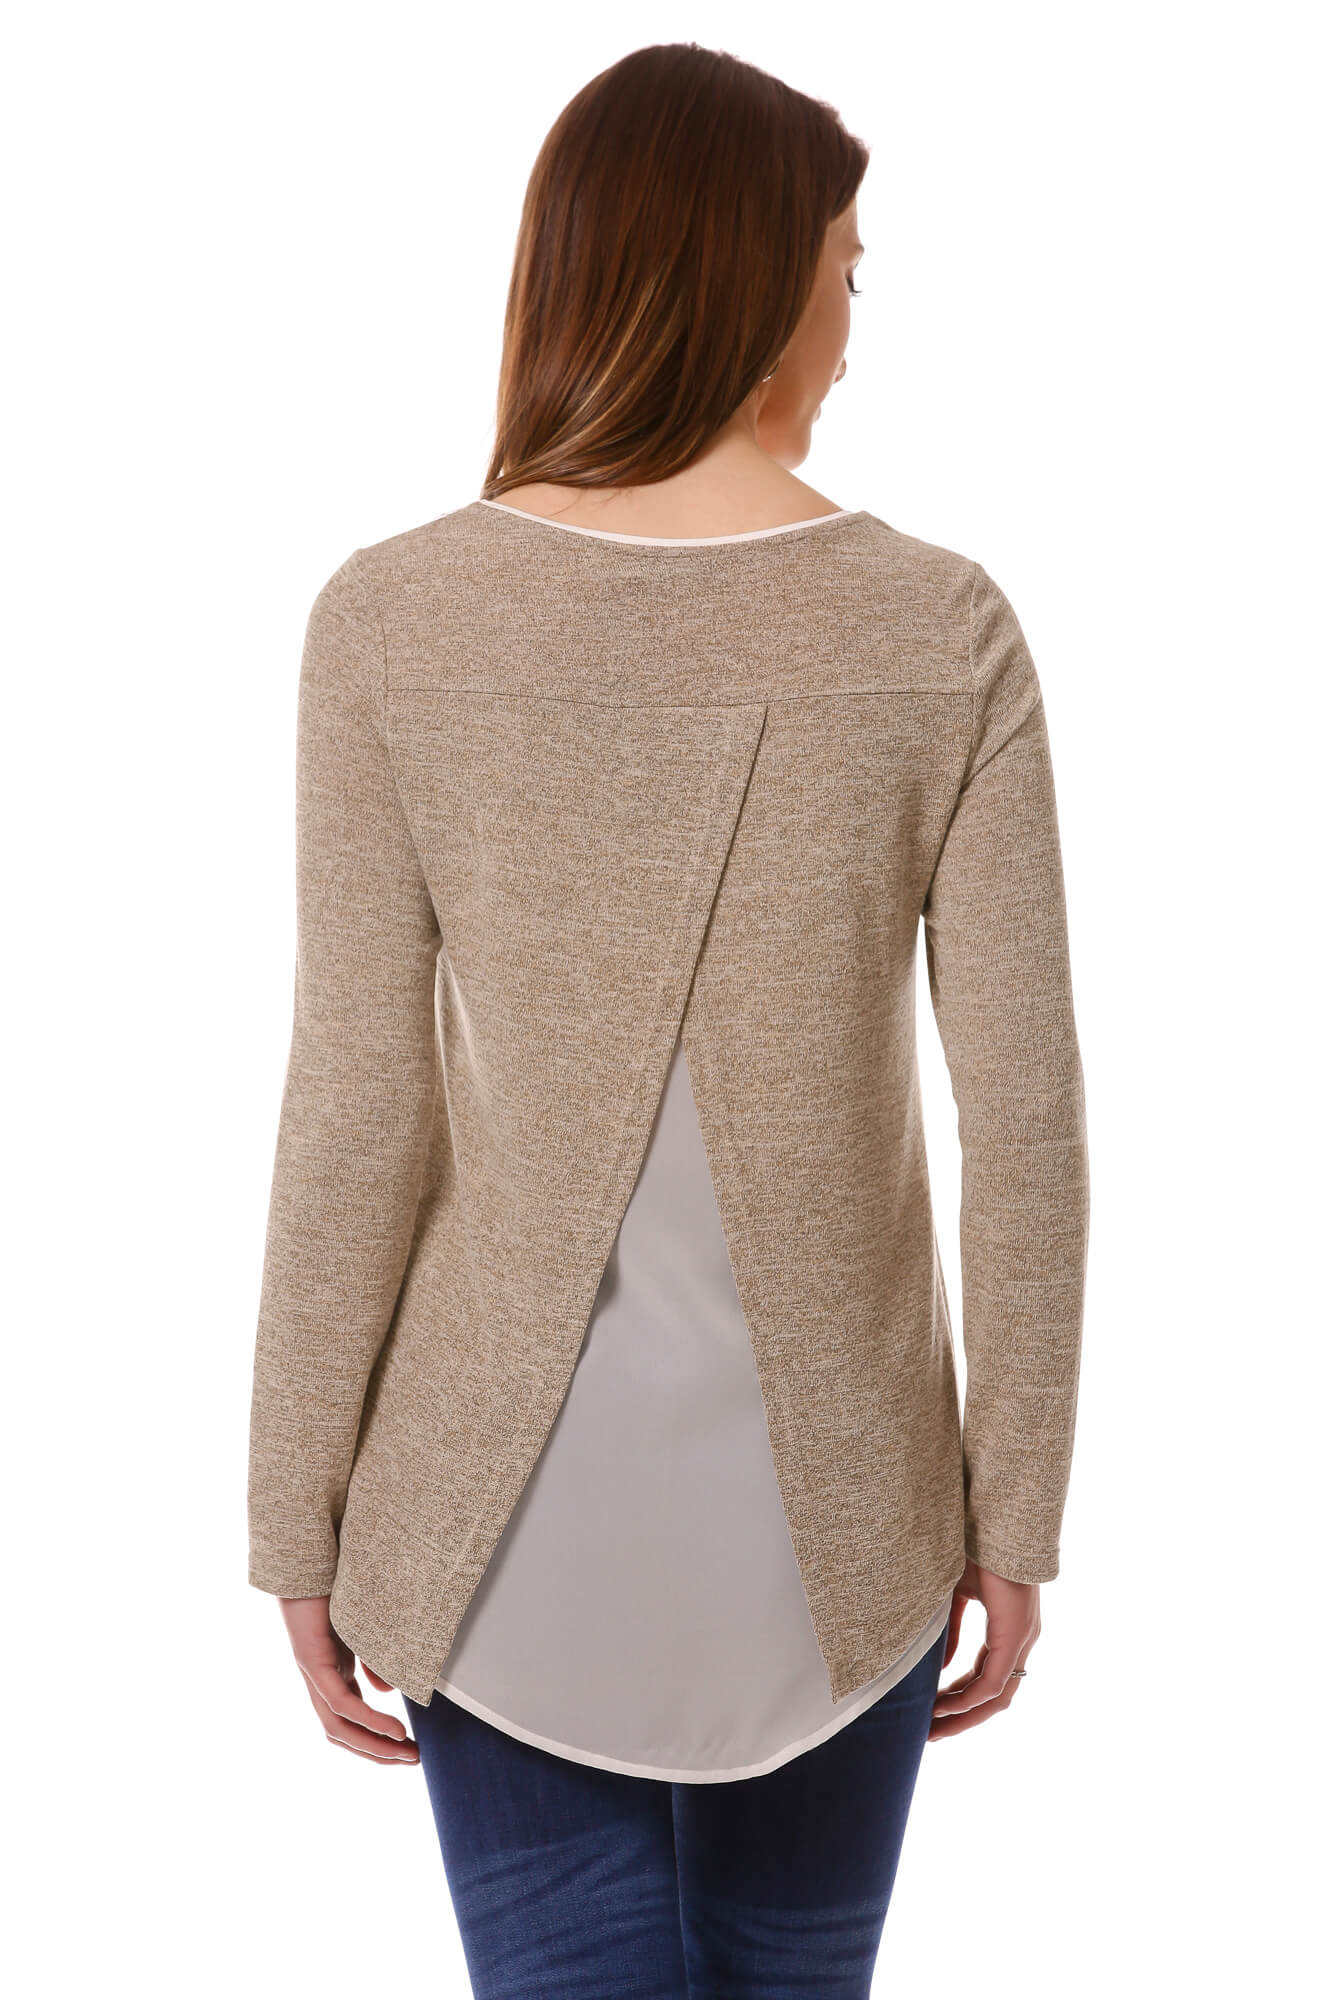 Women's Taupe Open Back Layered Top | Cozy top for Fall/Winter | Neesha Fashion